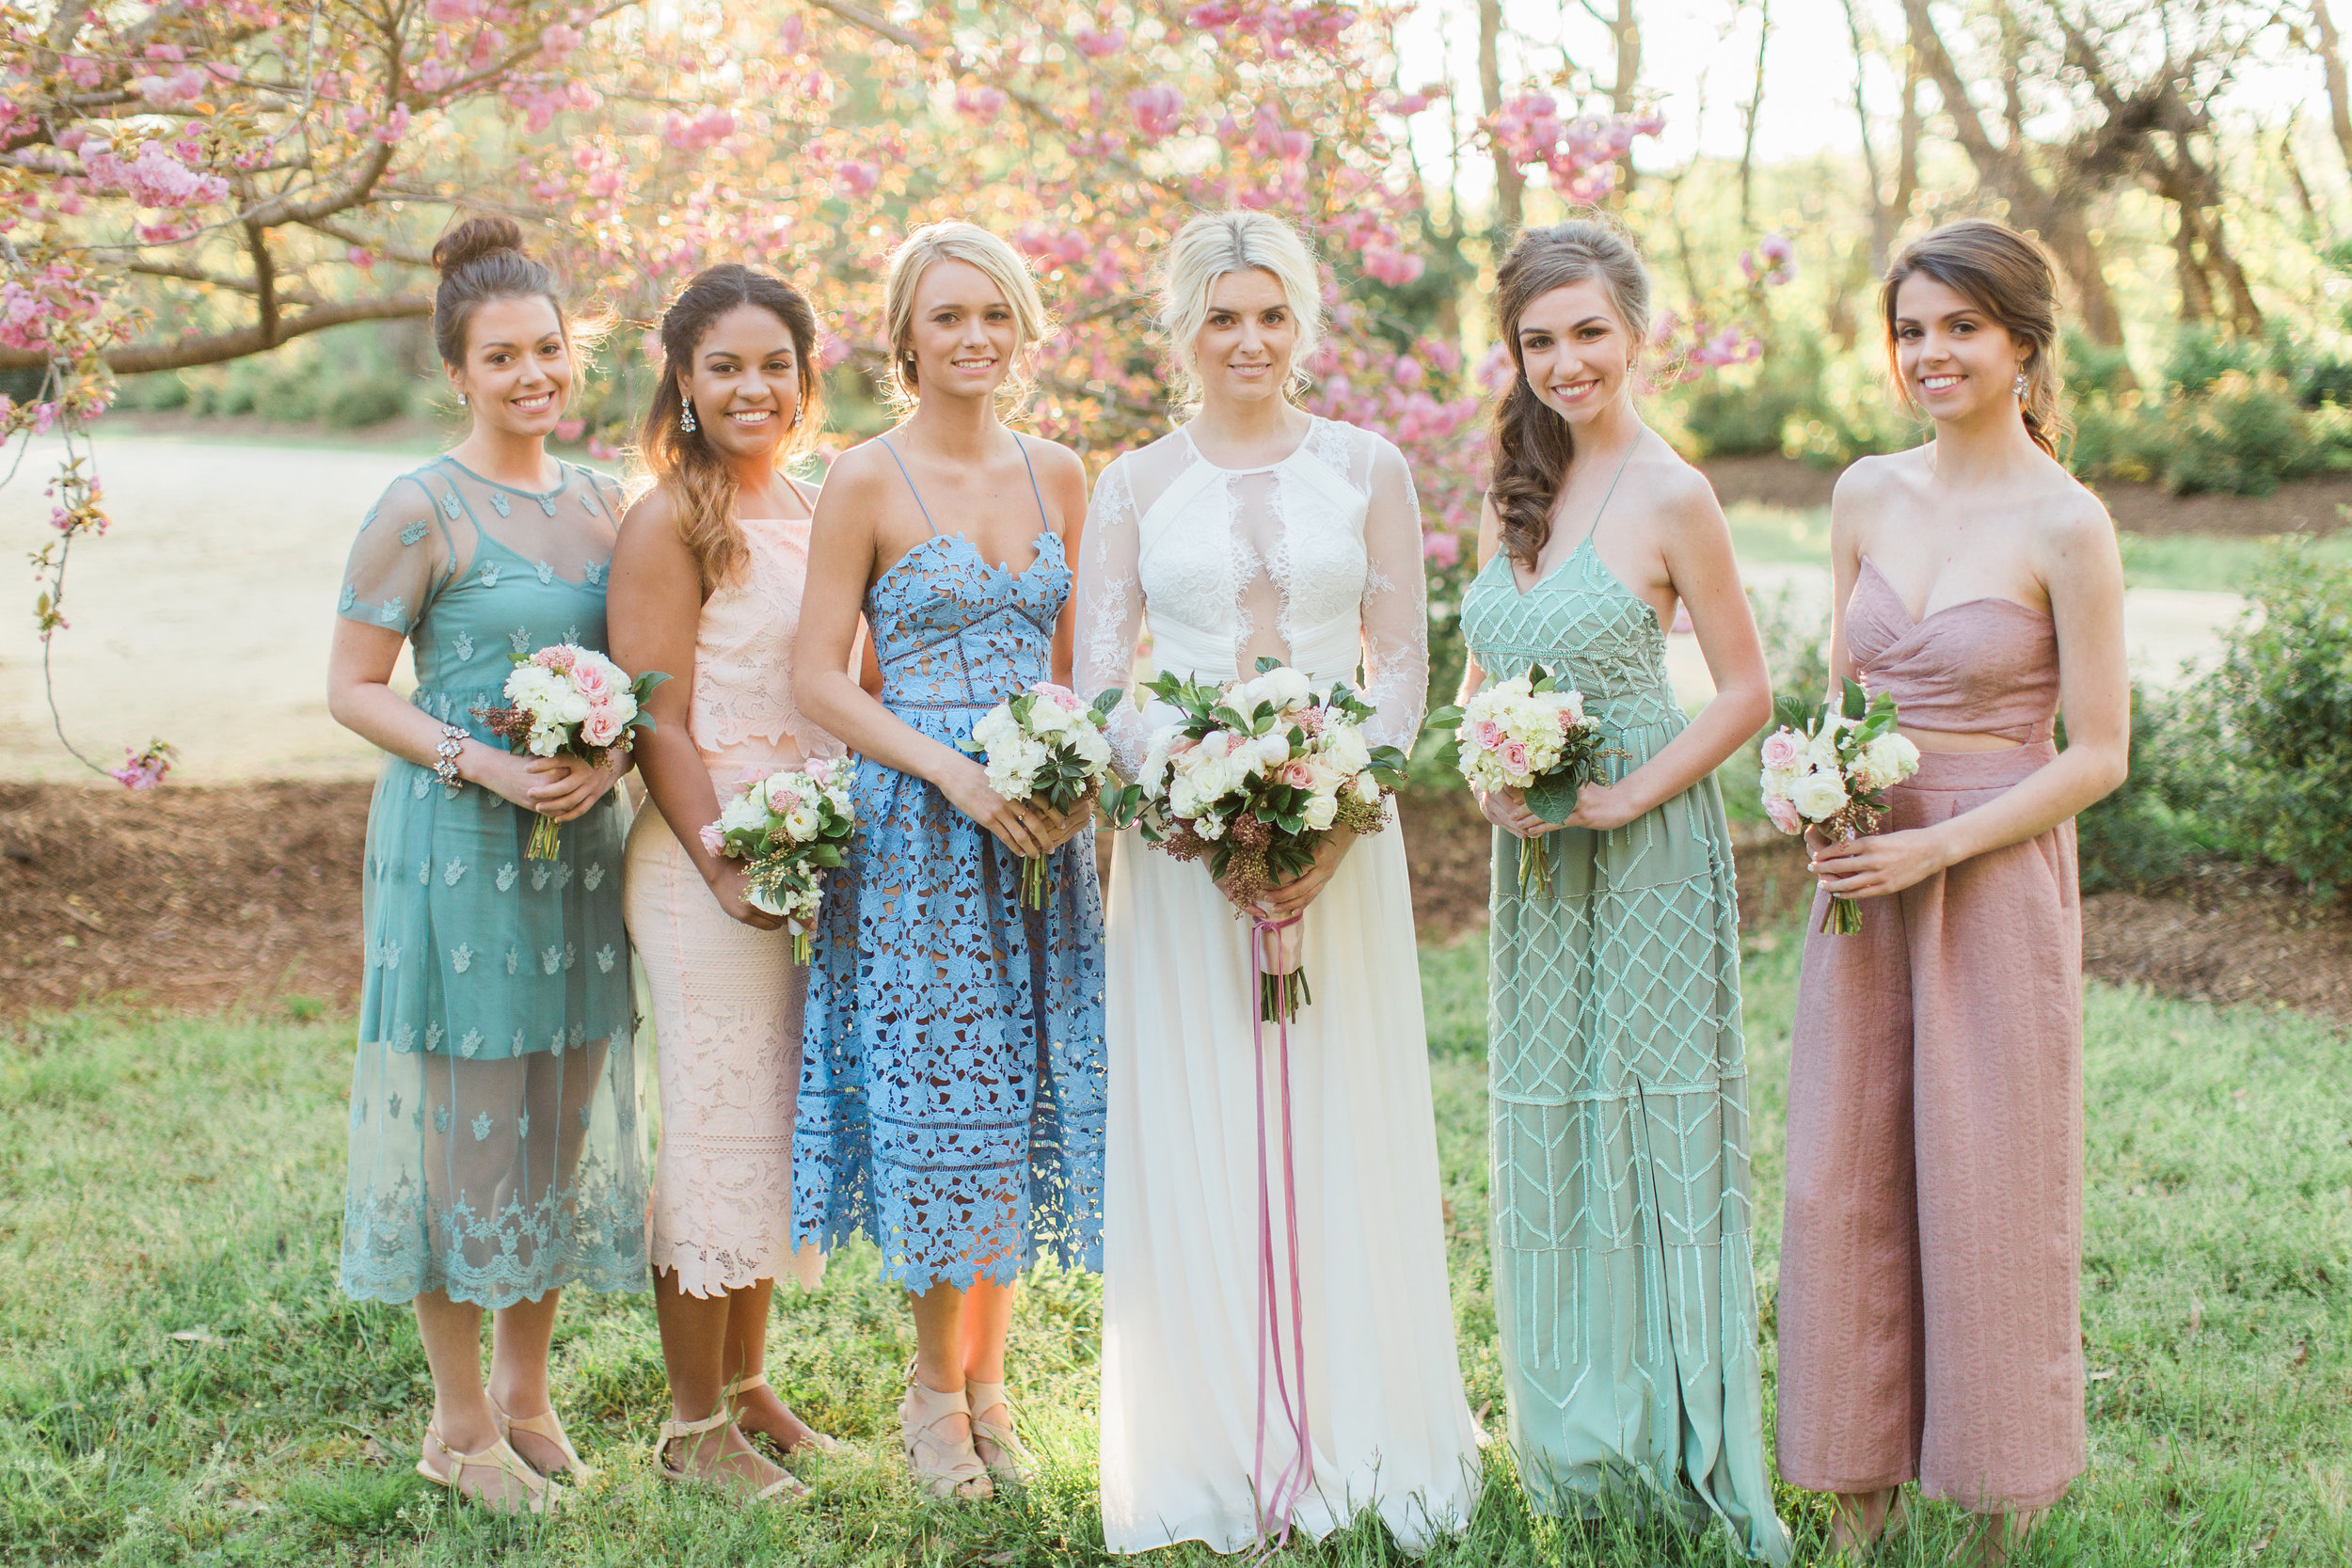 Should you hire a professional hair and makeup artist for your wedding?